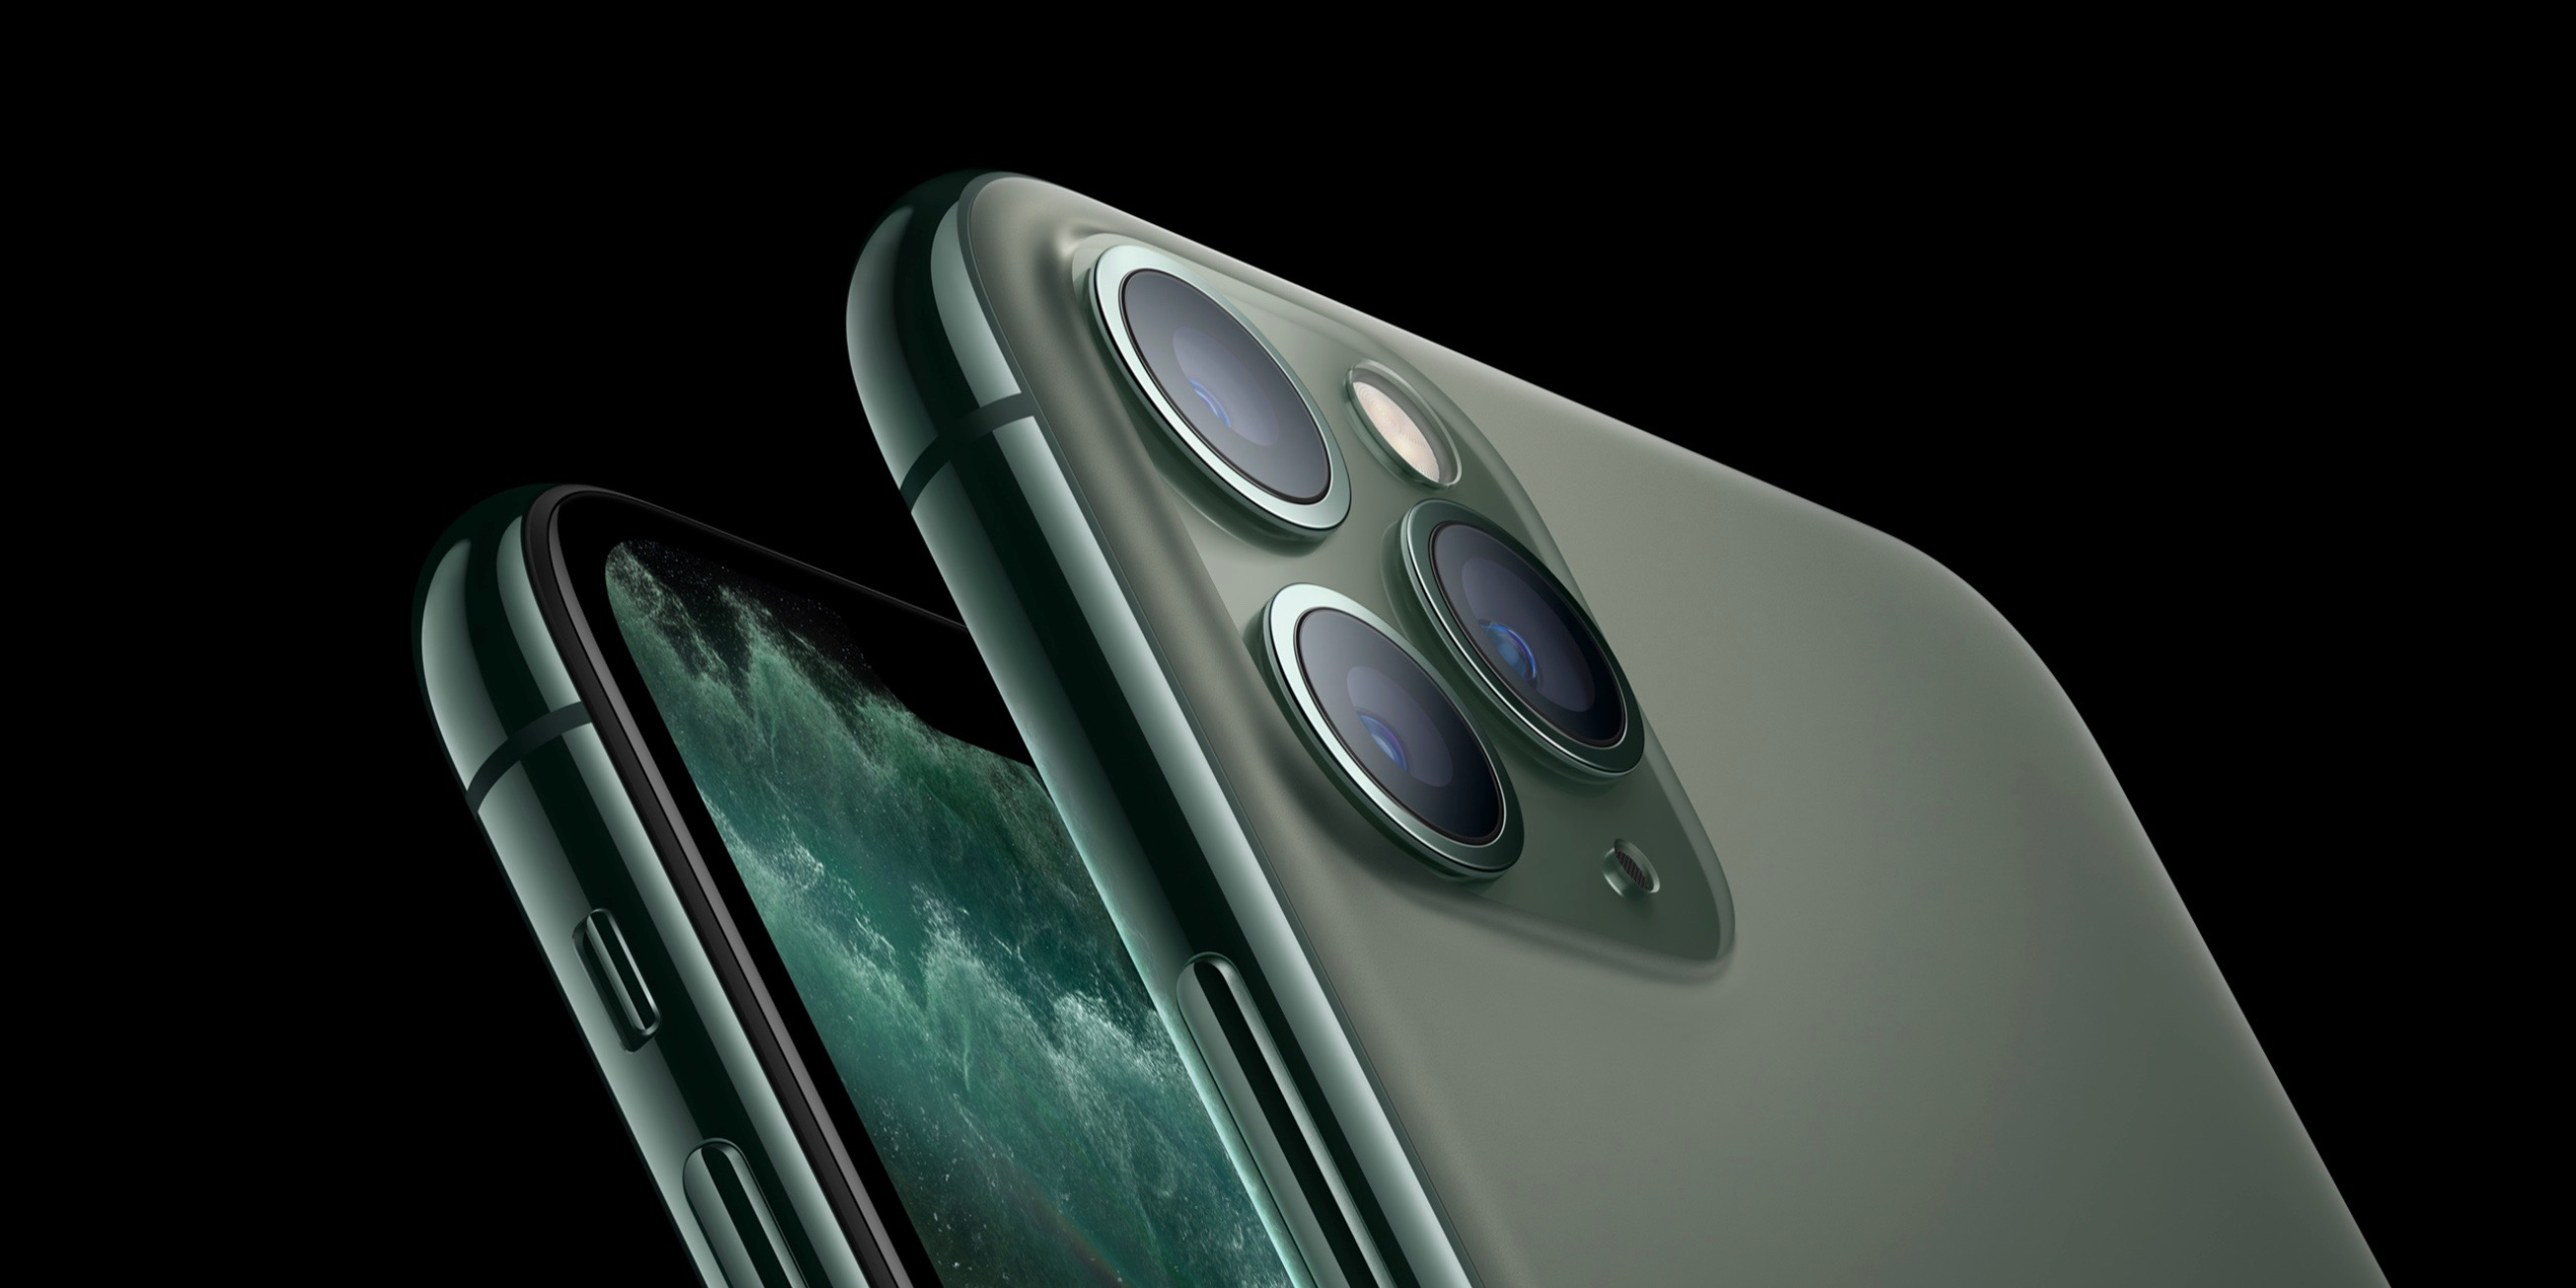 iPhone 11 Pro front and back